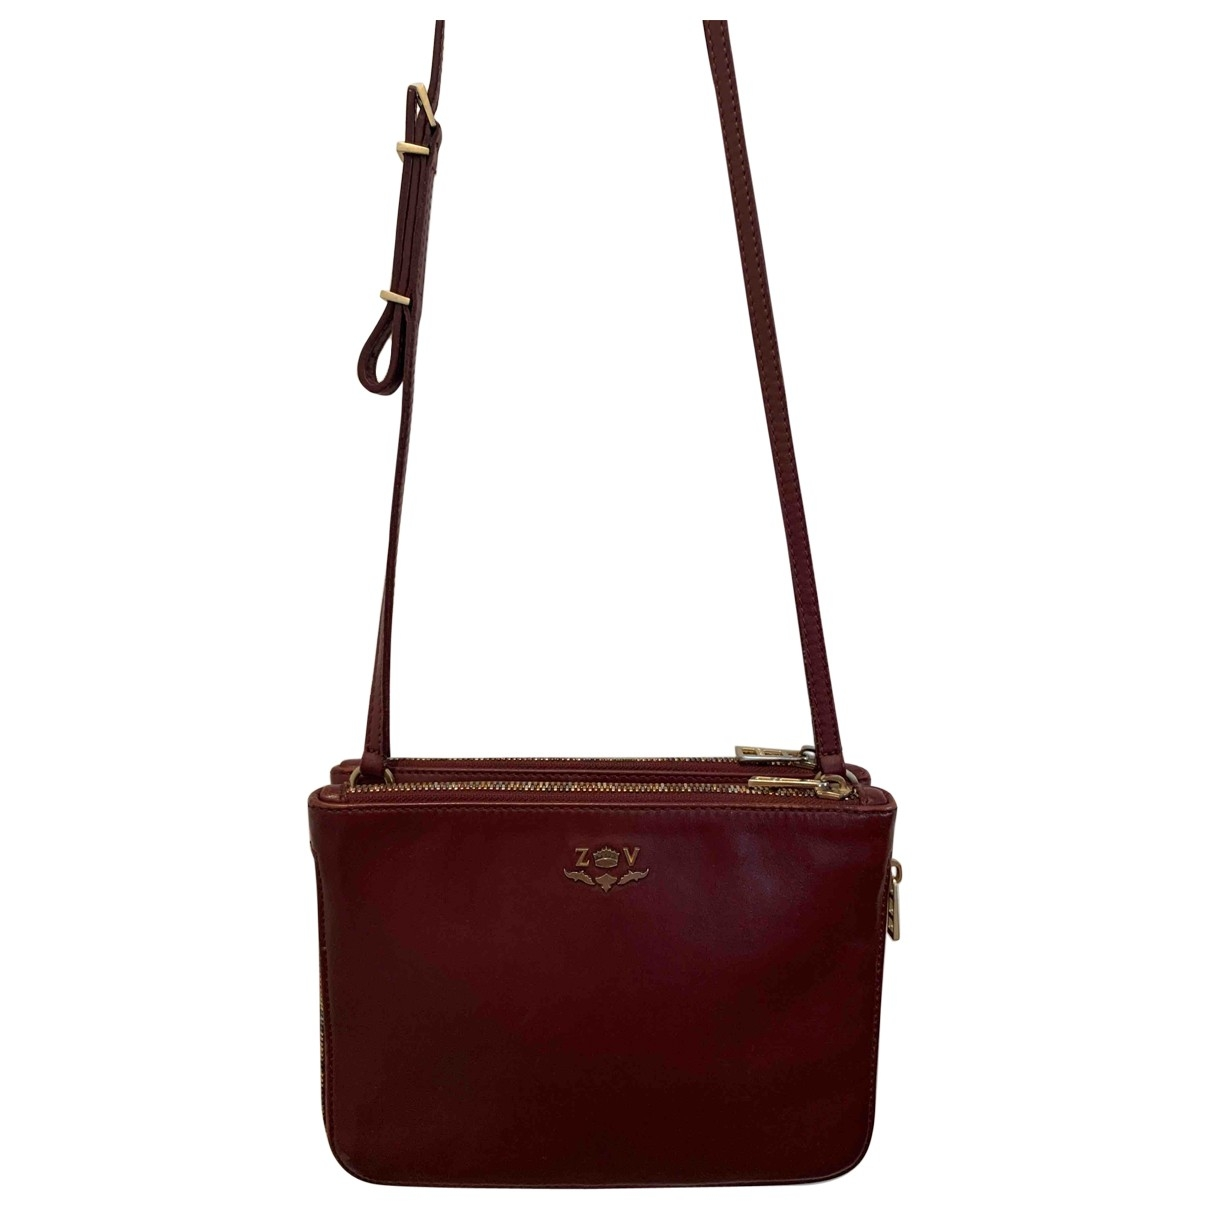 Zadig & Voltaire \N Burgundy Leather handbag for Women \N